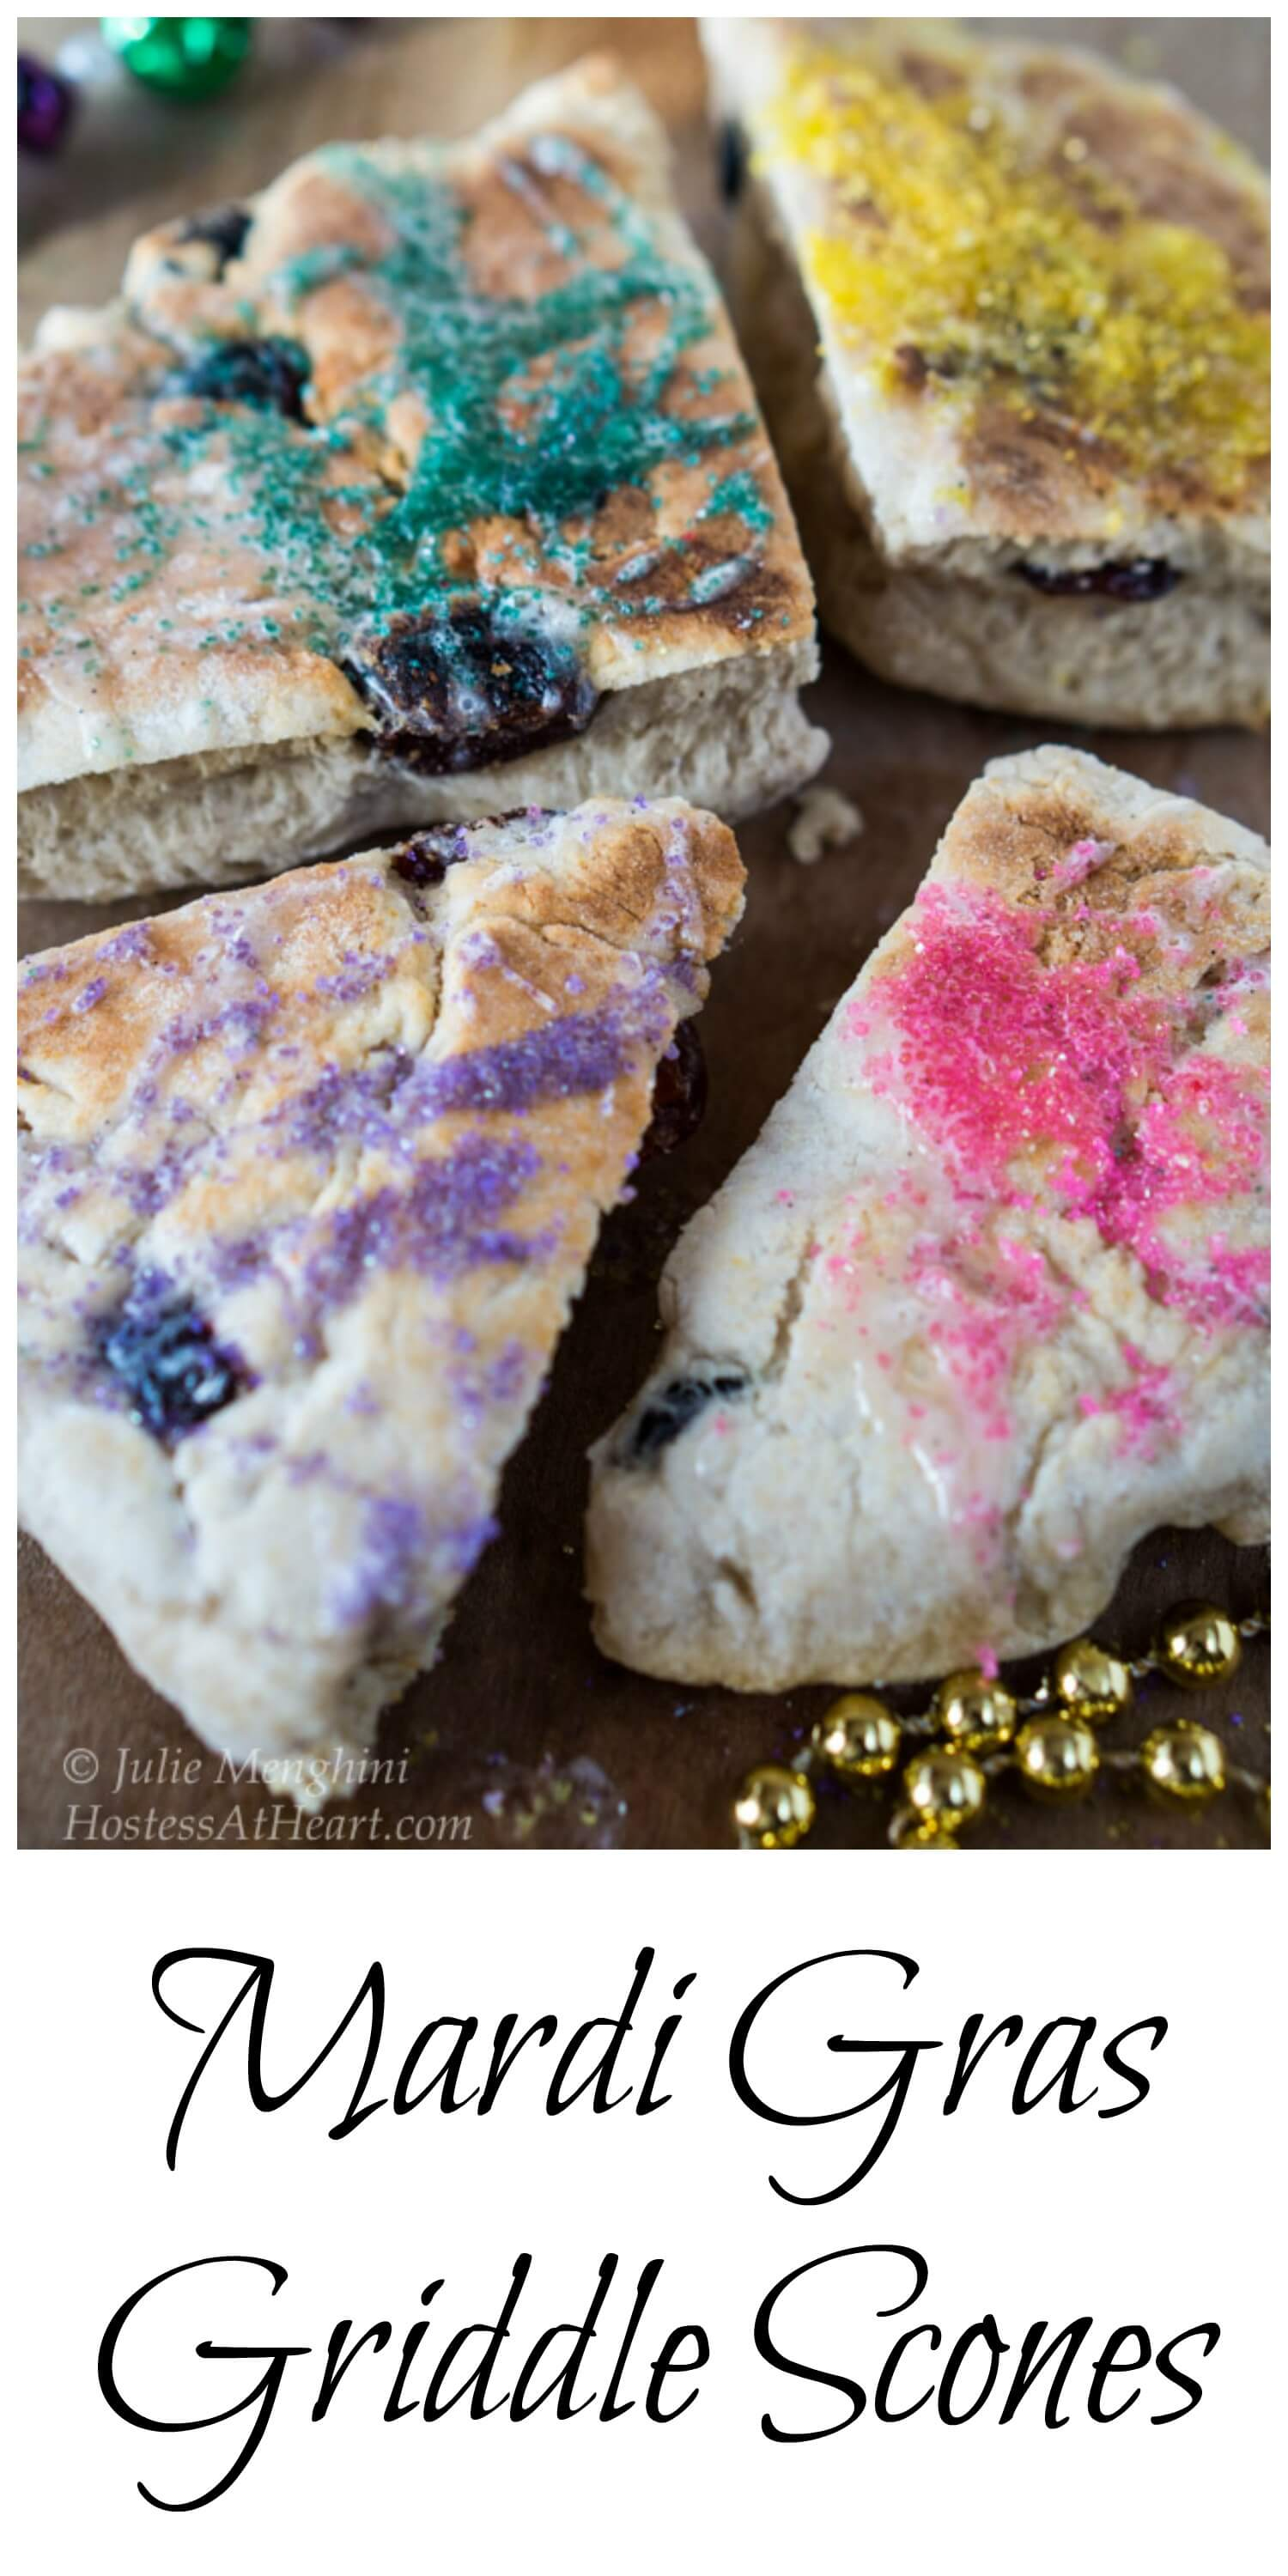 These Griddle Scones are quick, easy and delicious. They are just begging for a party or celebration and a little imagination! | HostessAtHeart.com